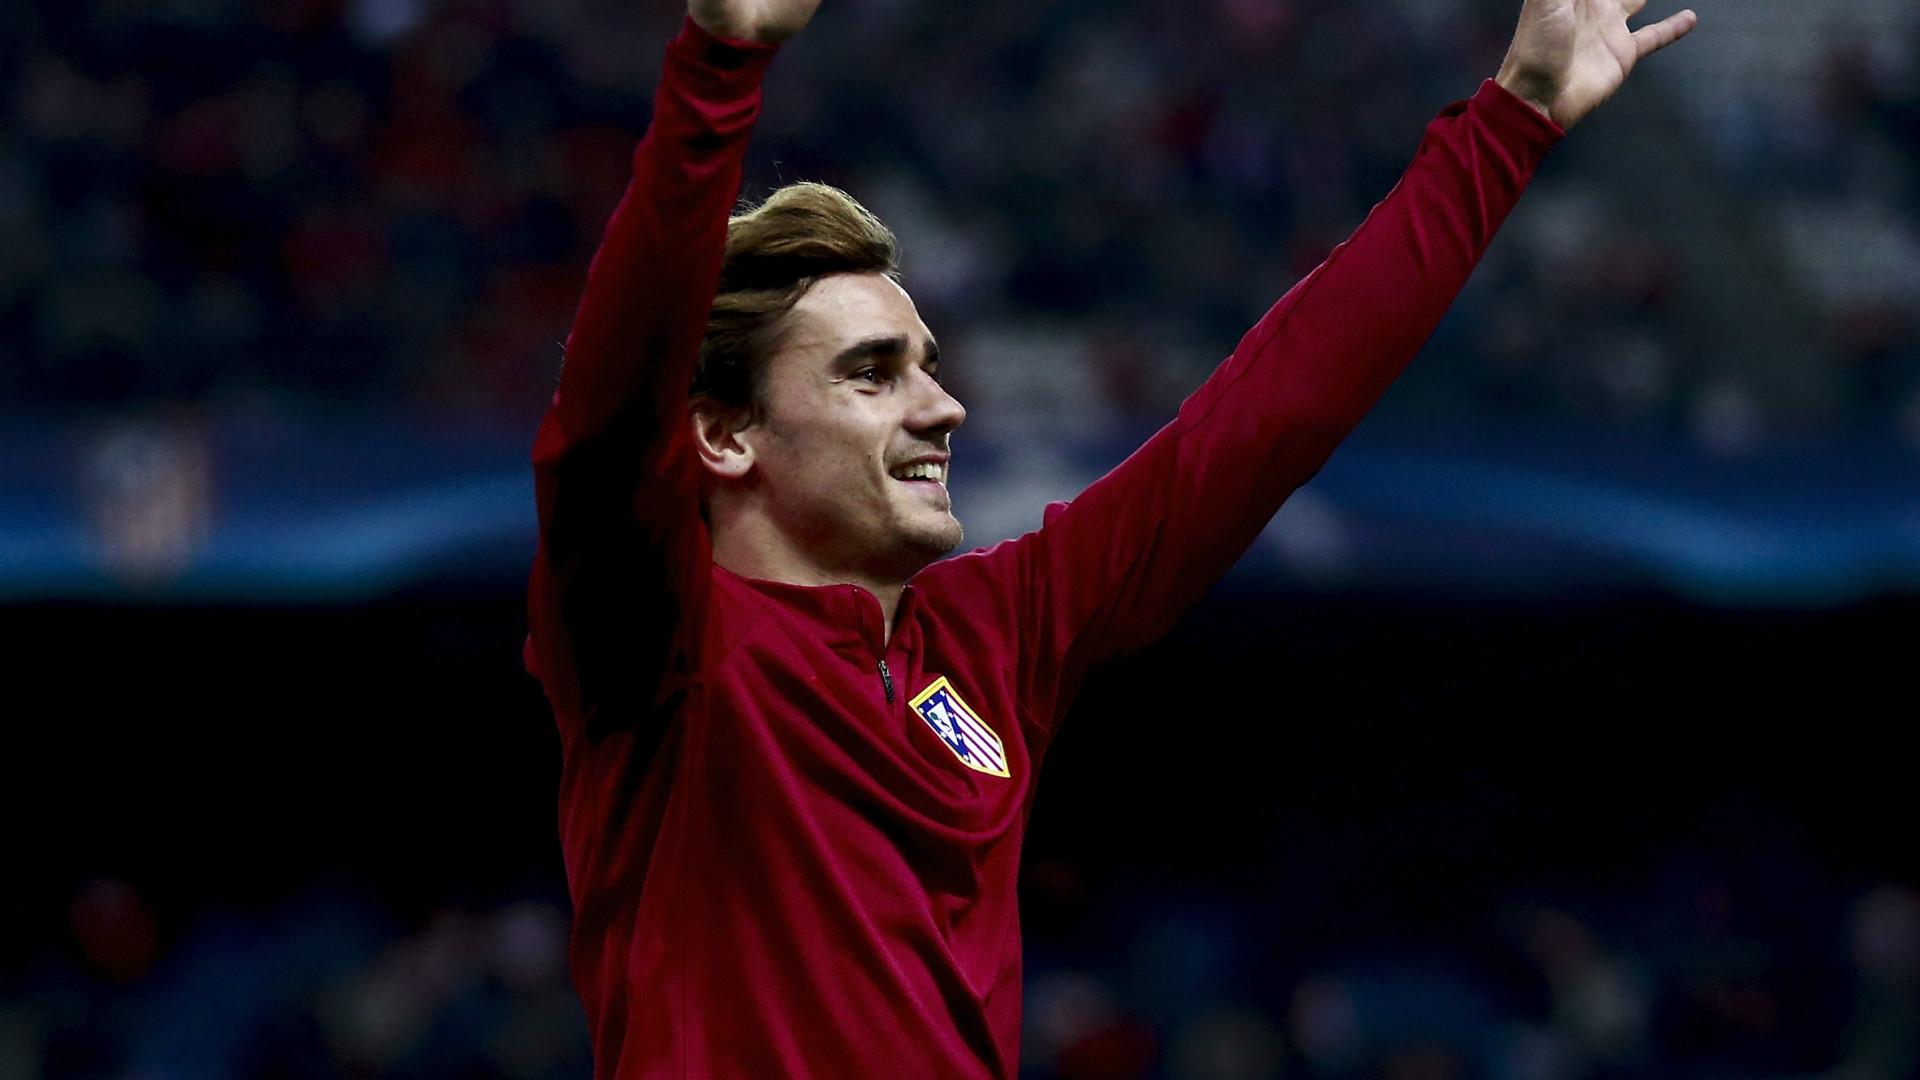 Transfer talk becoming tiresome, says Atletico striker Griezmann